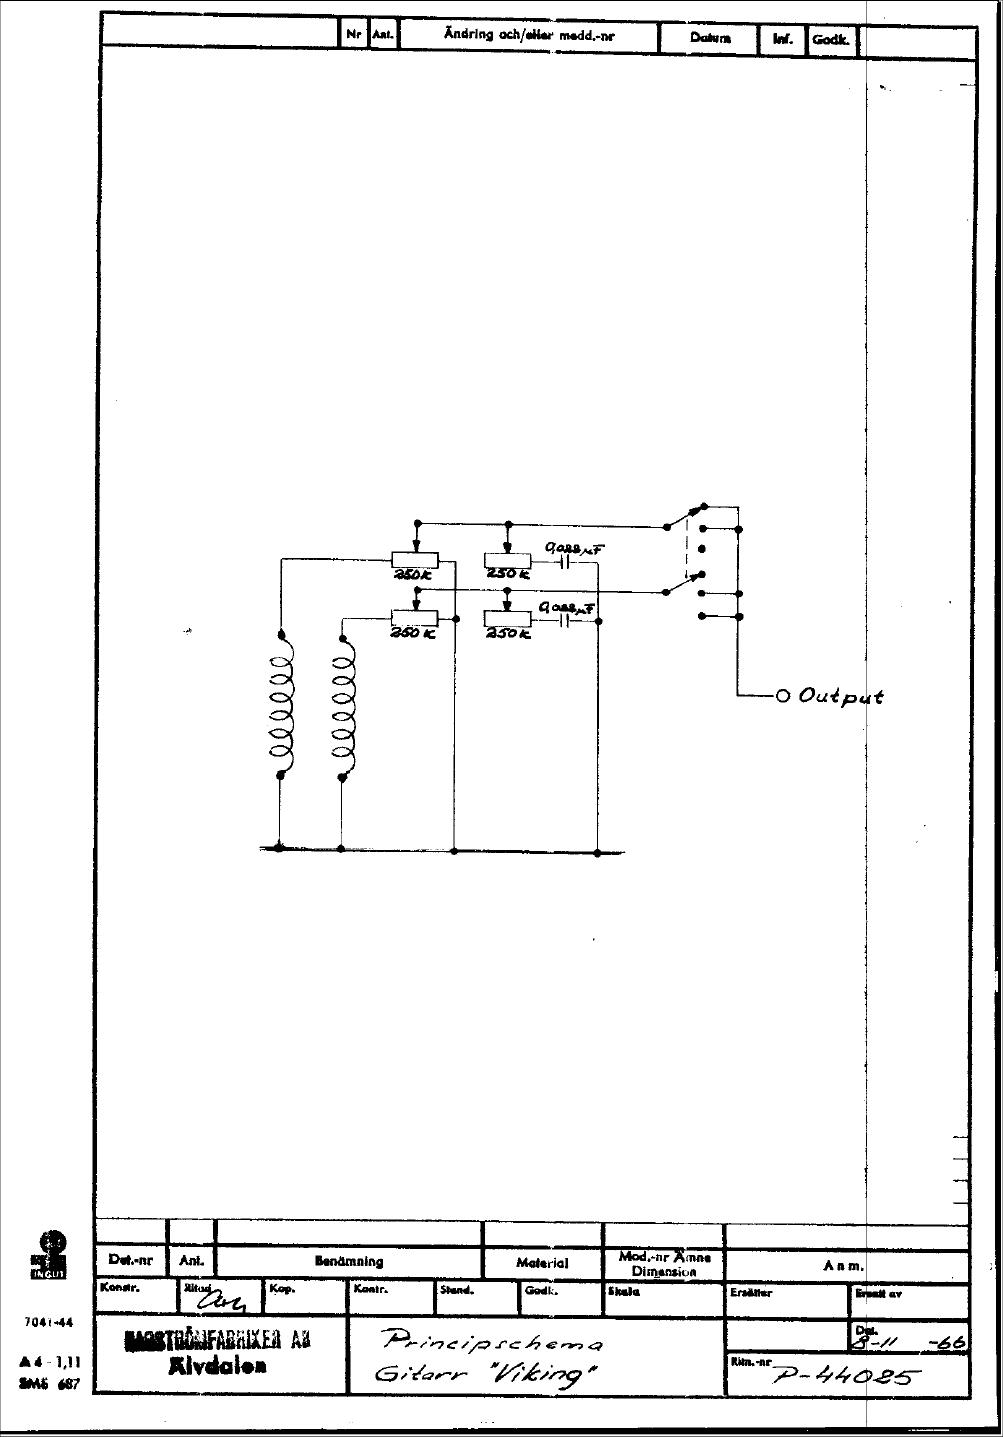 hagstrom wiring diagrams guitar wiring diagrams humbucker images guitar wiring drawings switching system hagstrom viking pict picture przystawki2 hagstrom viking 1966 jpg humbucker wiring diagram images